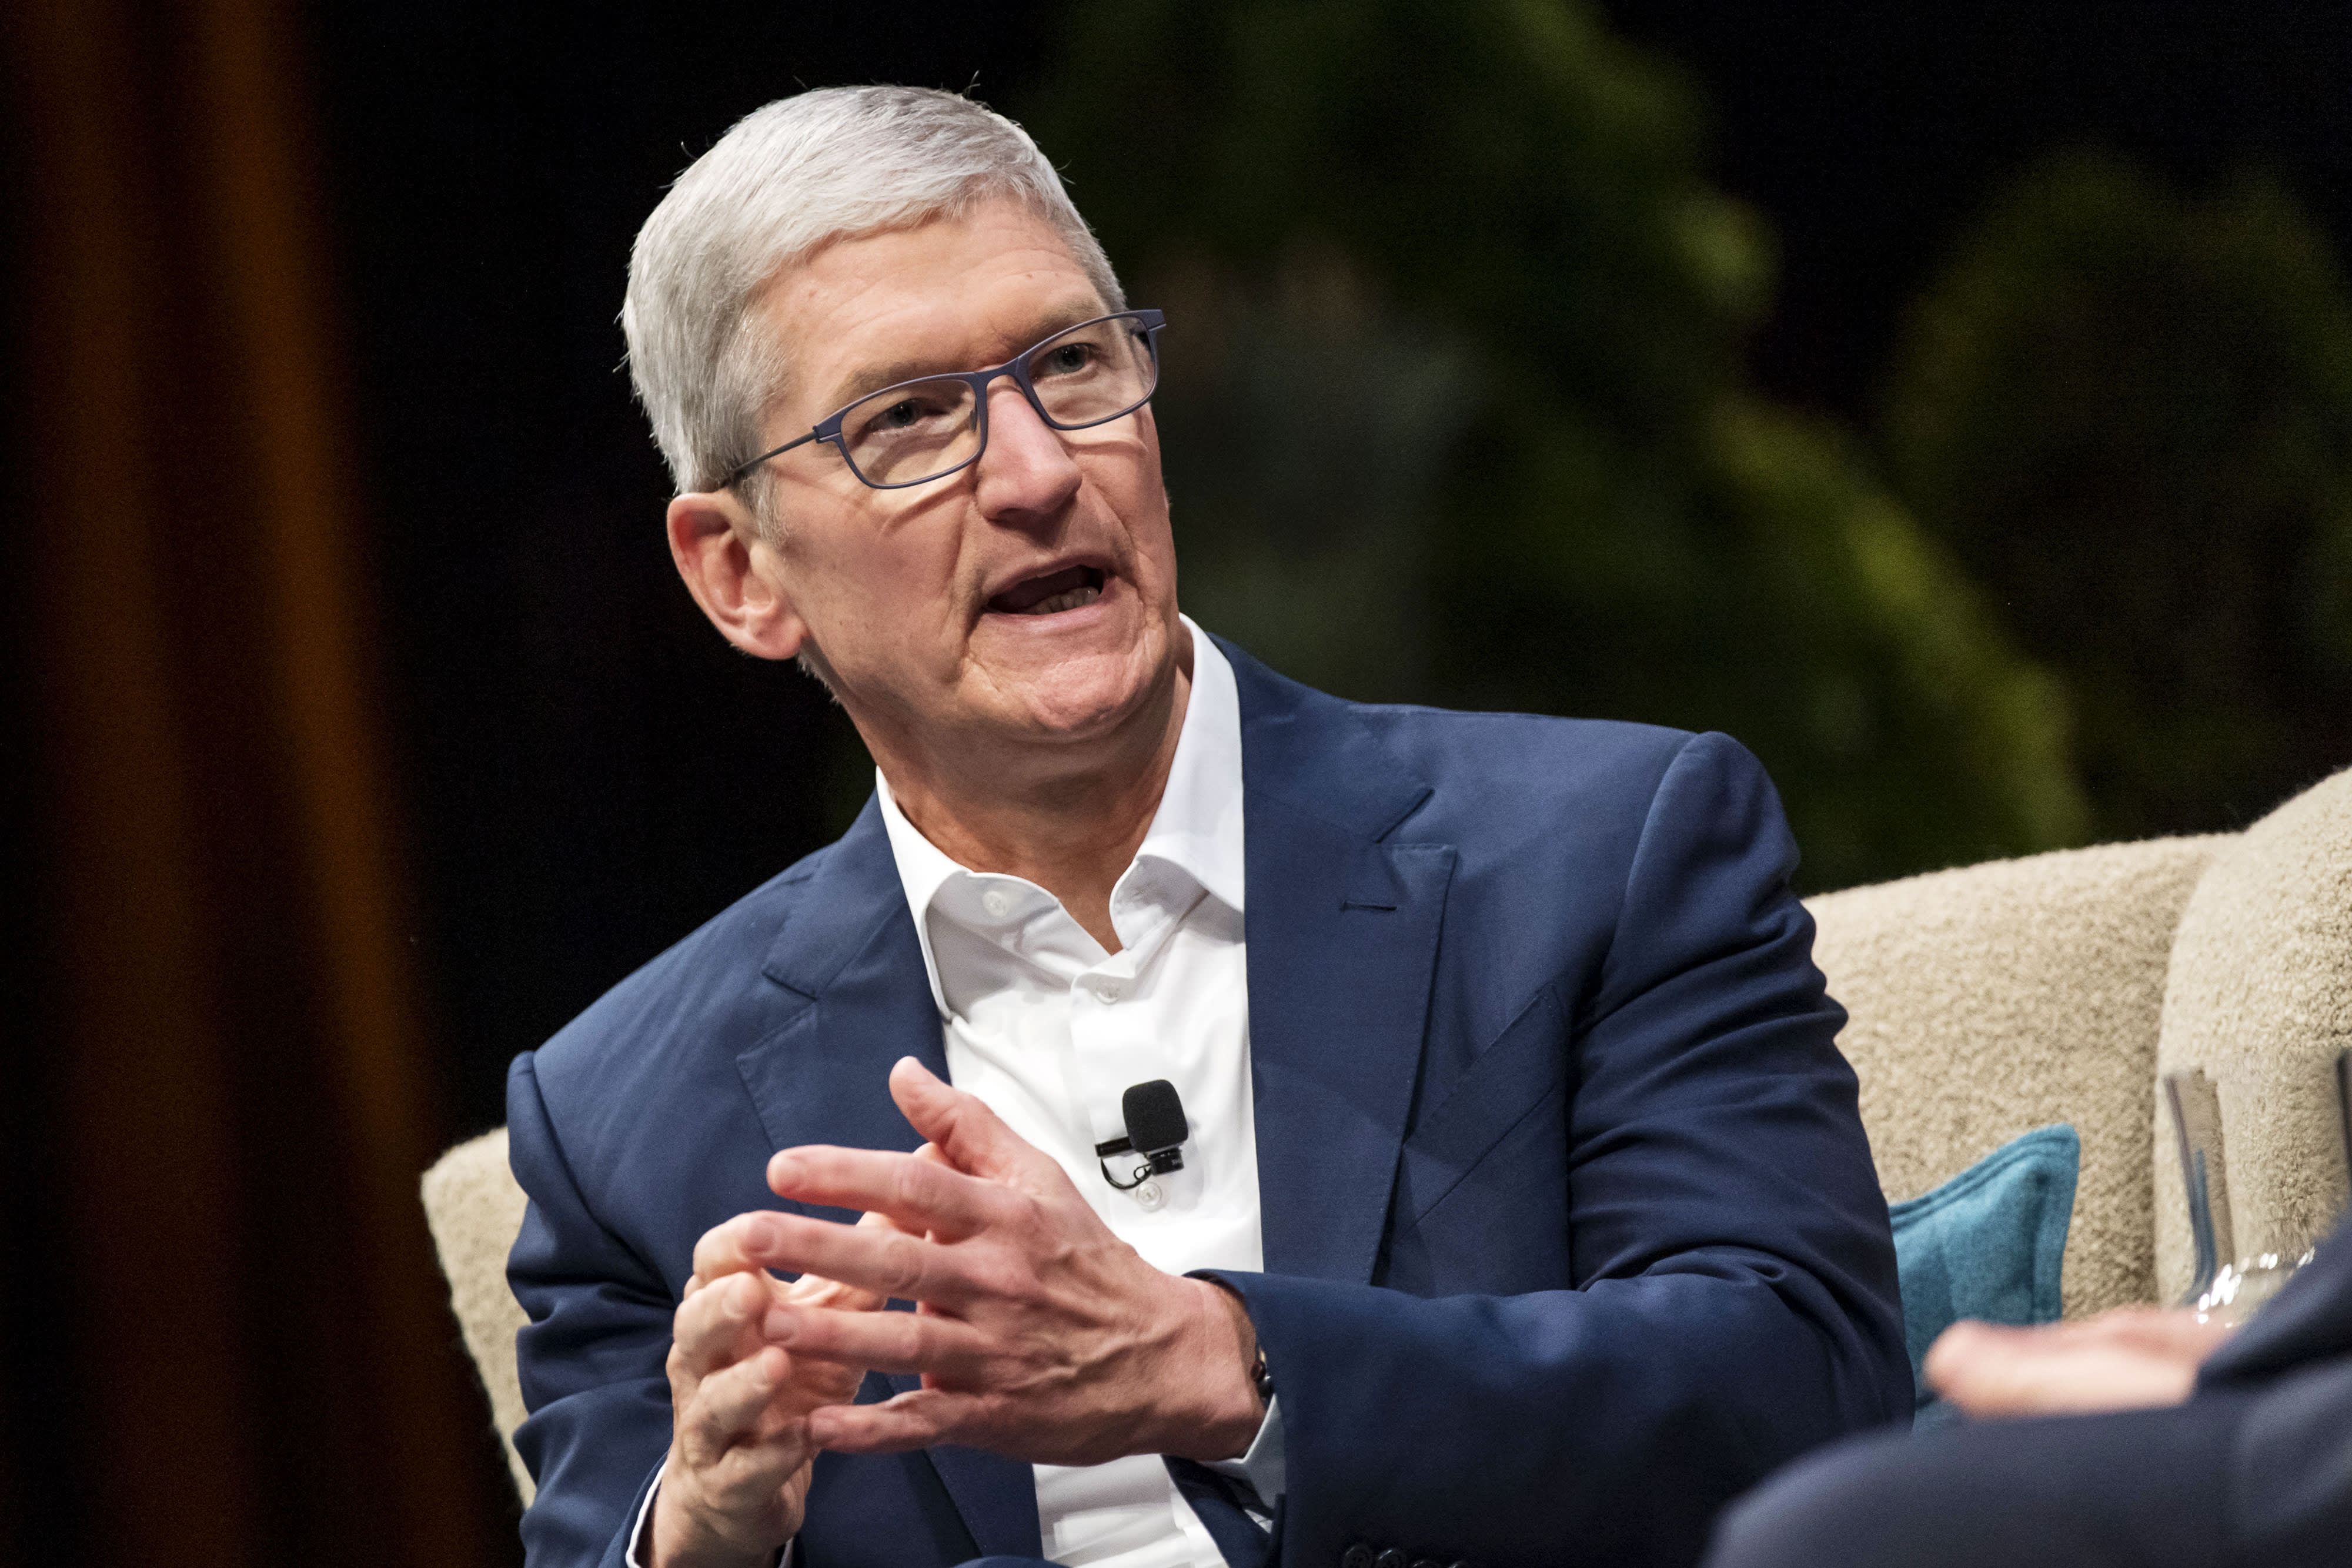 Apple announces COVID-19 website and app in partnership with CDC and the White House